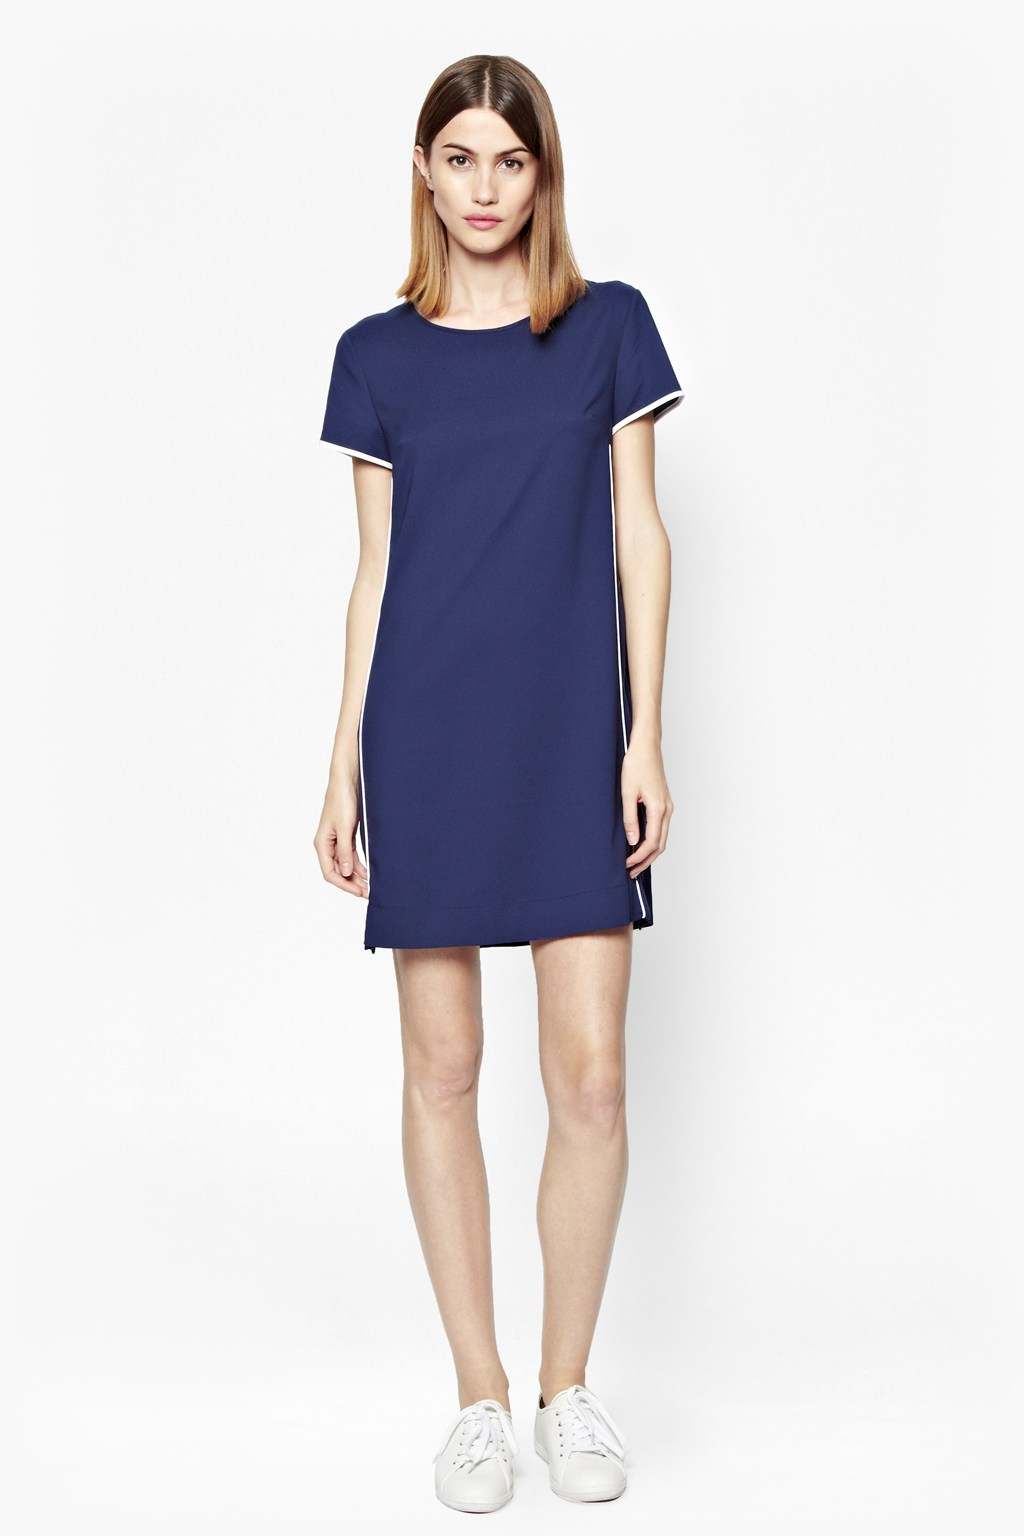 Polly Piping T Shirt Dress Dresses French Connection